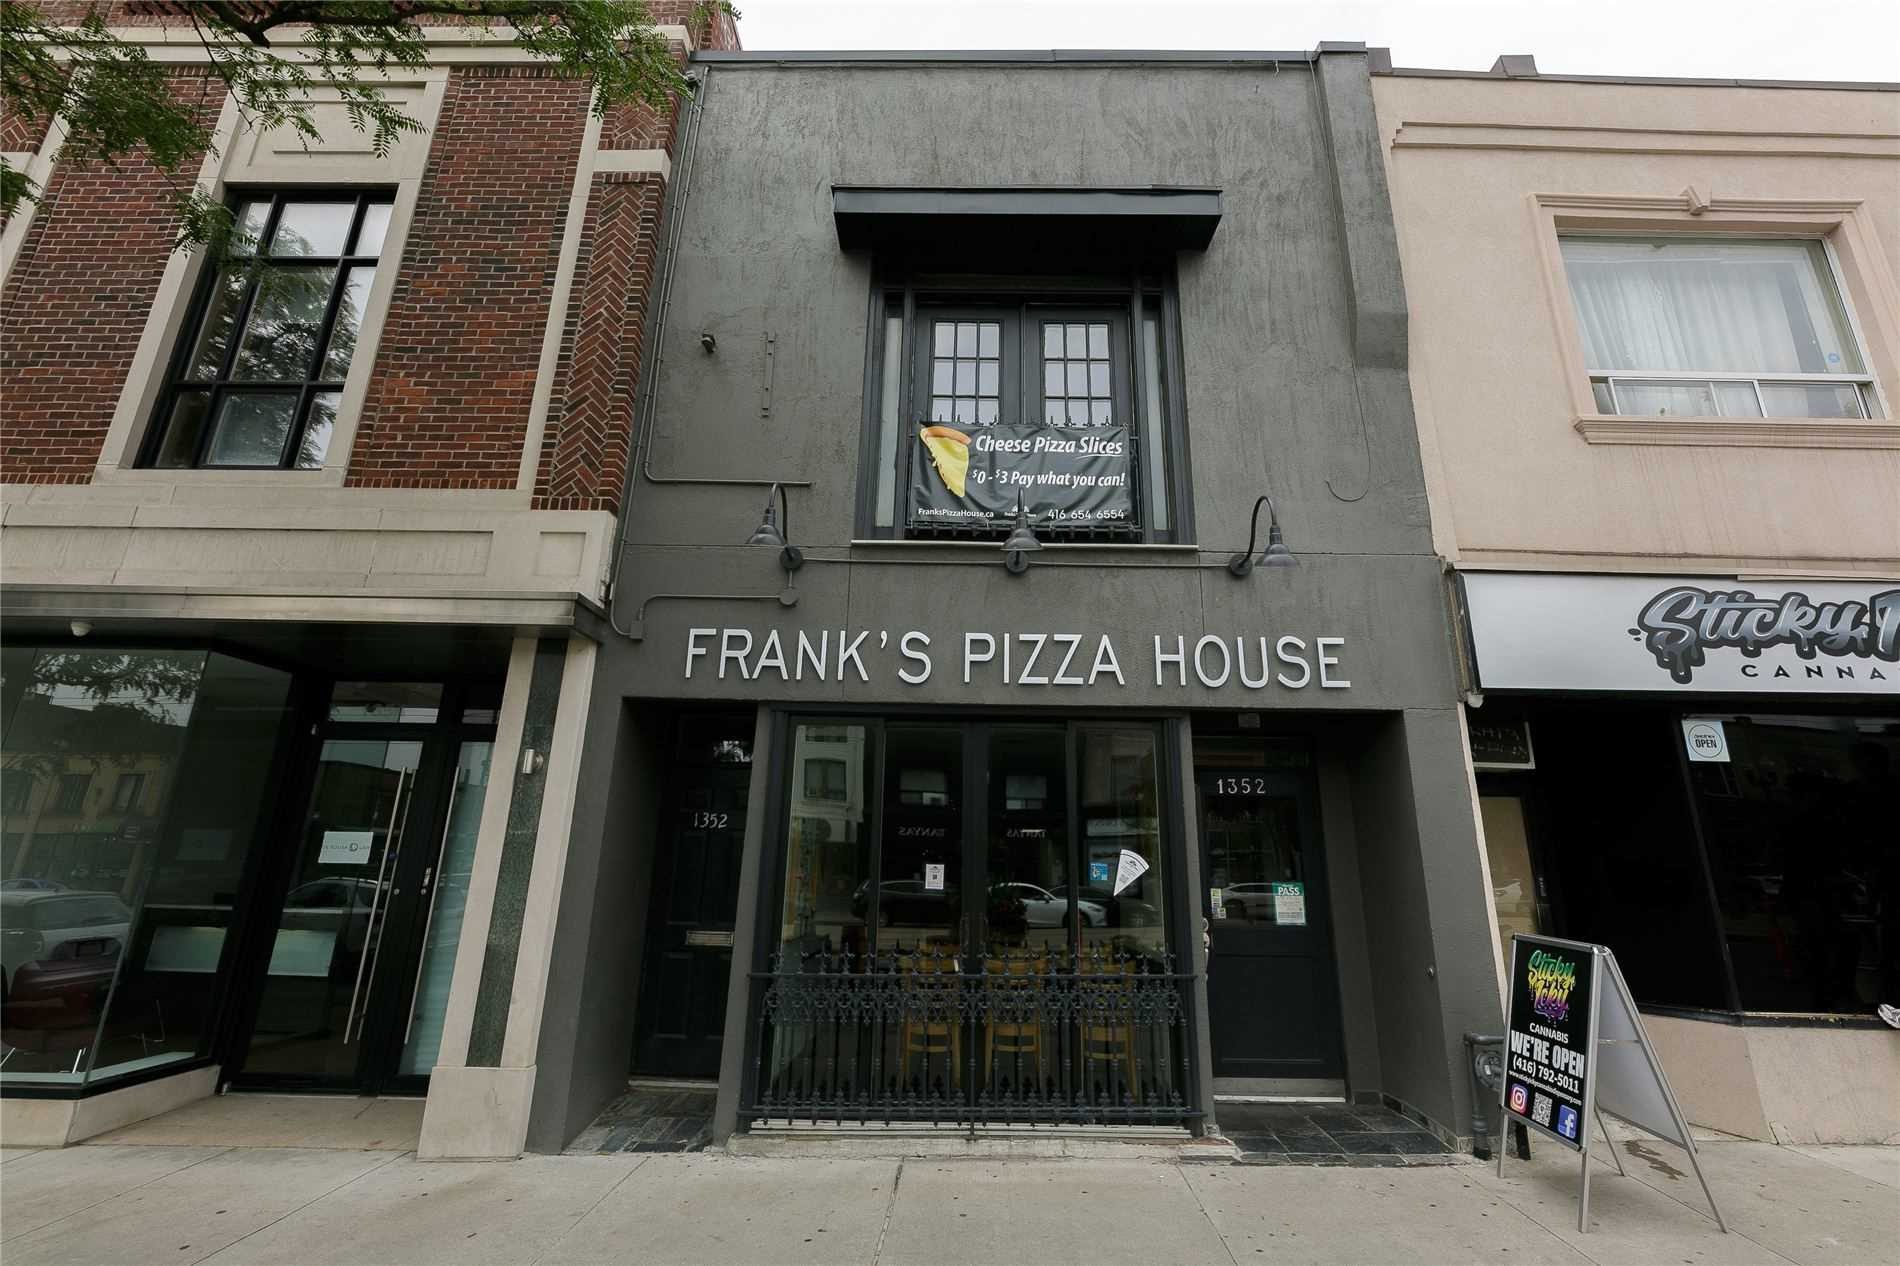 Commercial/retail For Lease In Toronto , ,Commercial/retail,For Lease,Main,St Clair